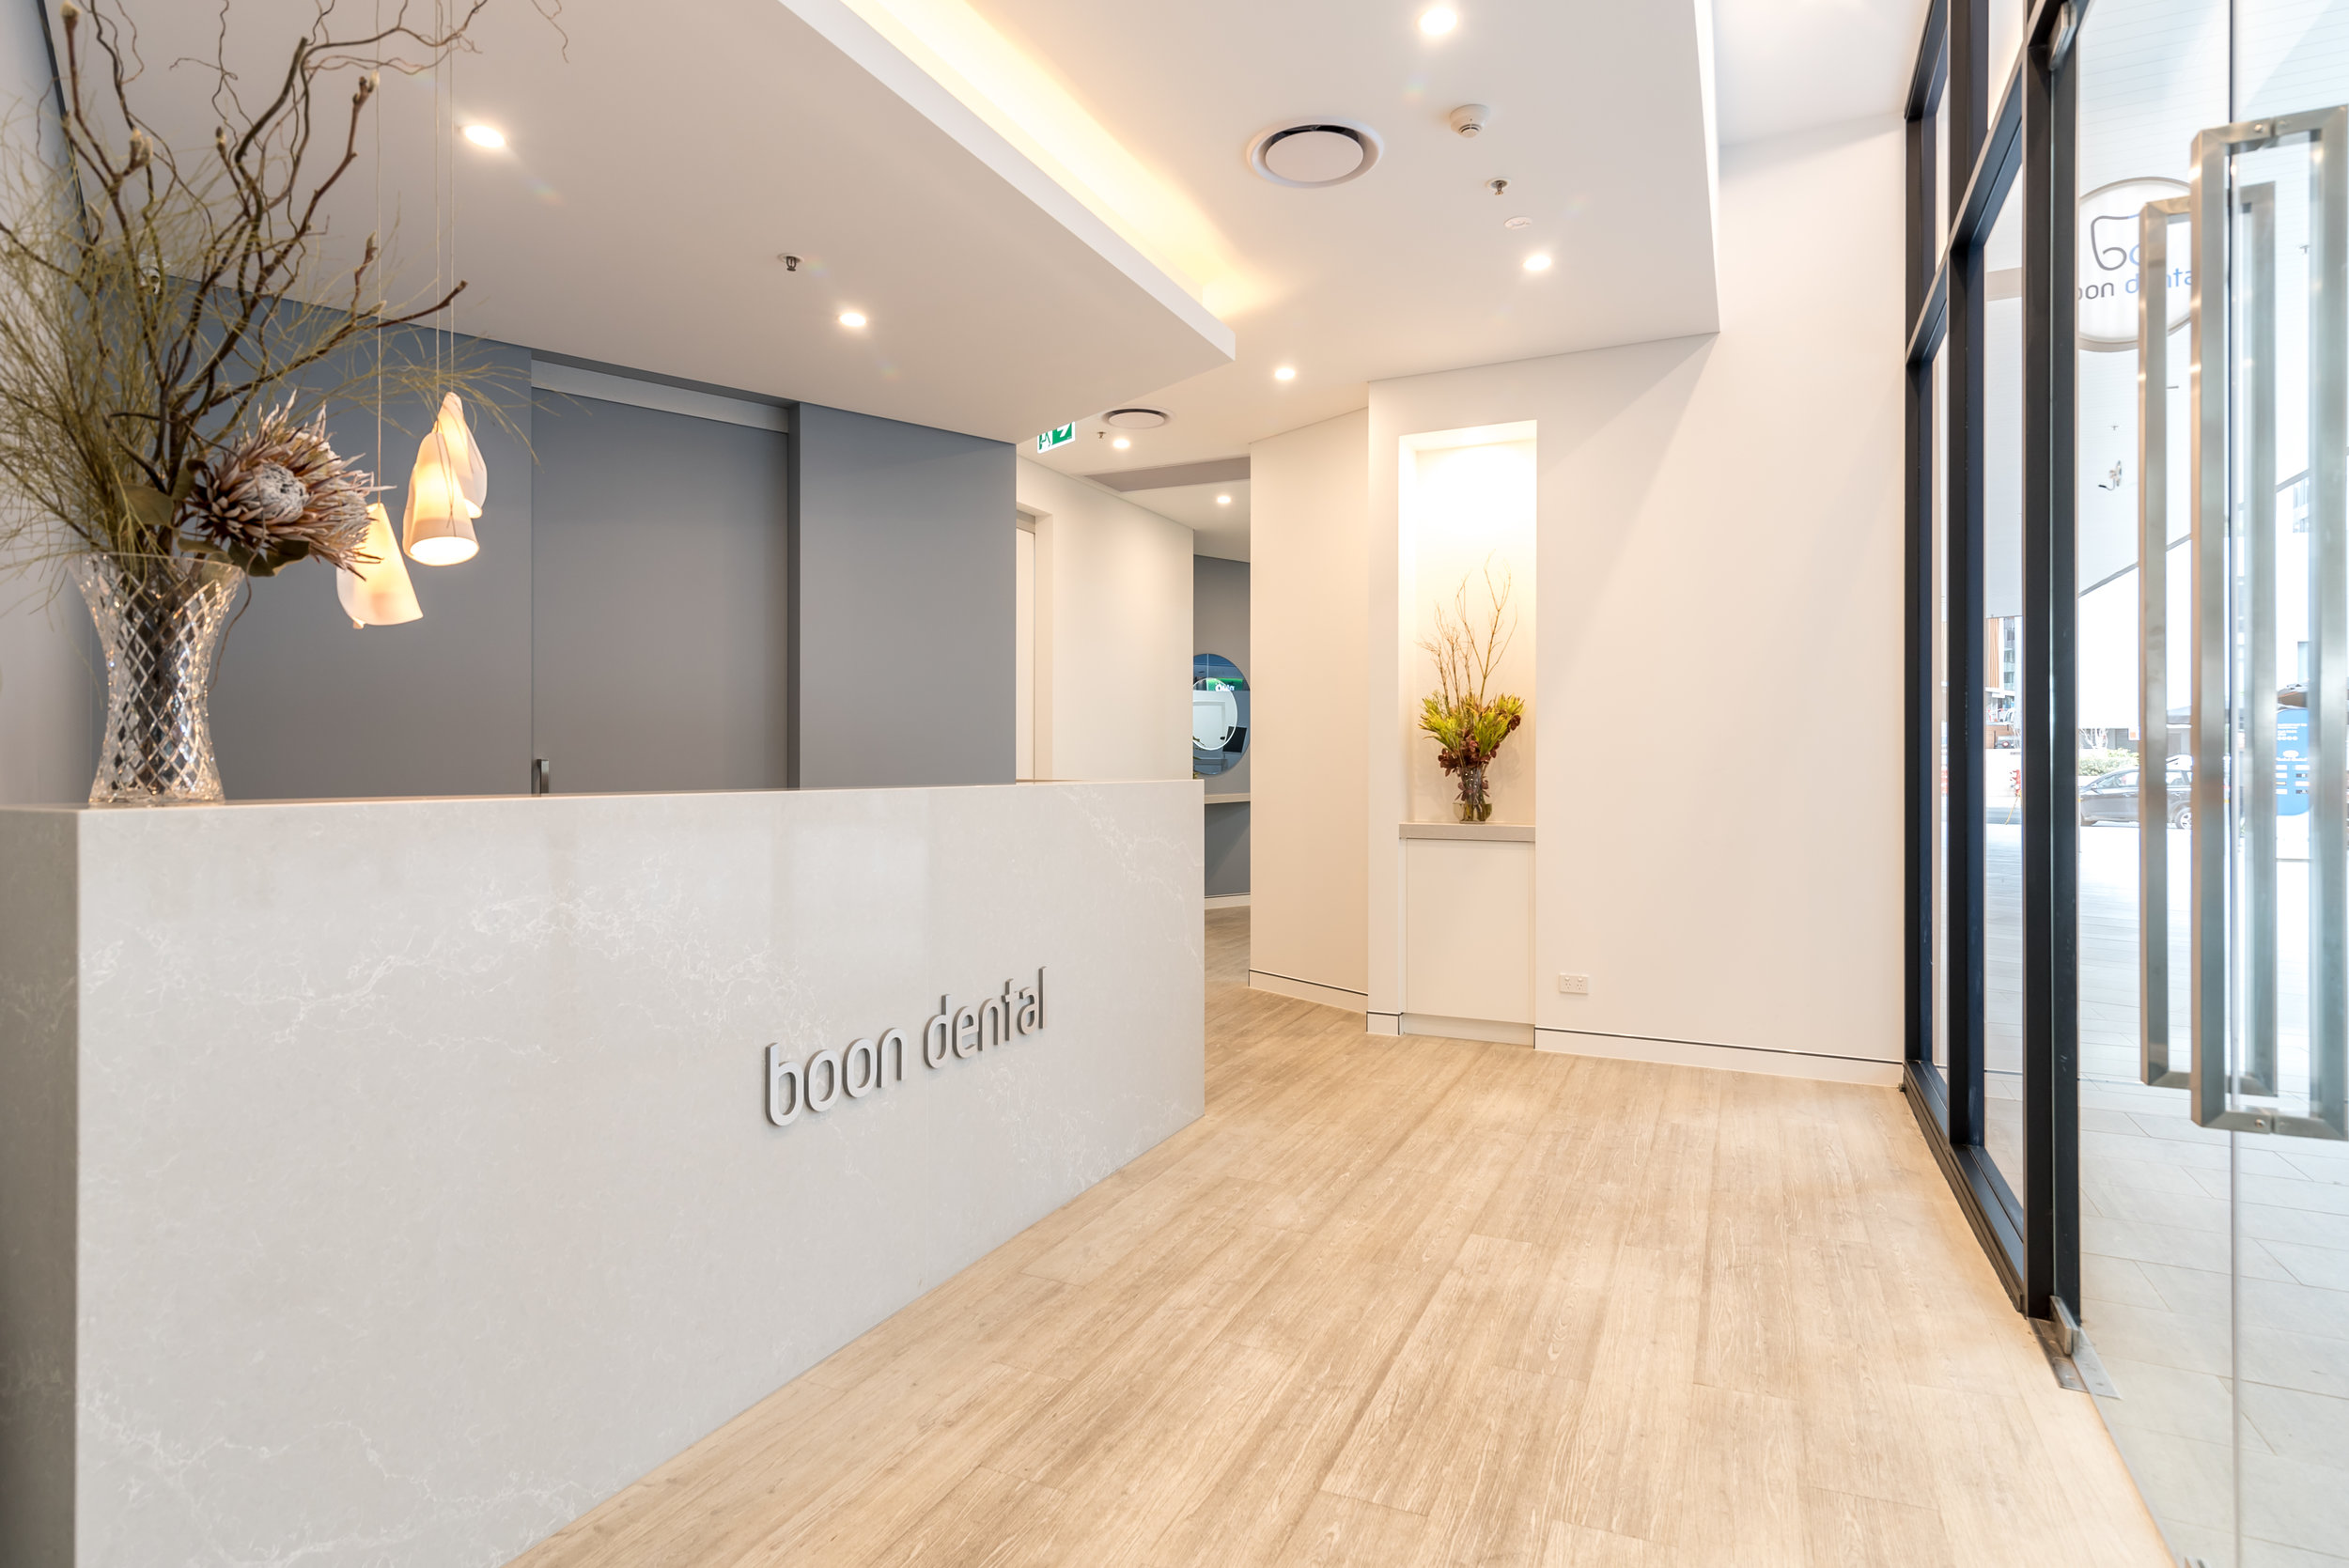 Commodore Dental and Medical Fitout - Sydney-51.jpg